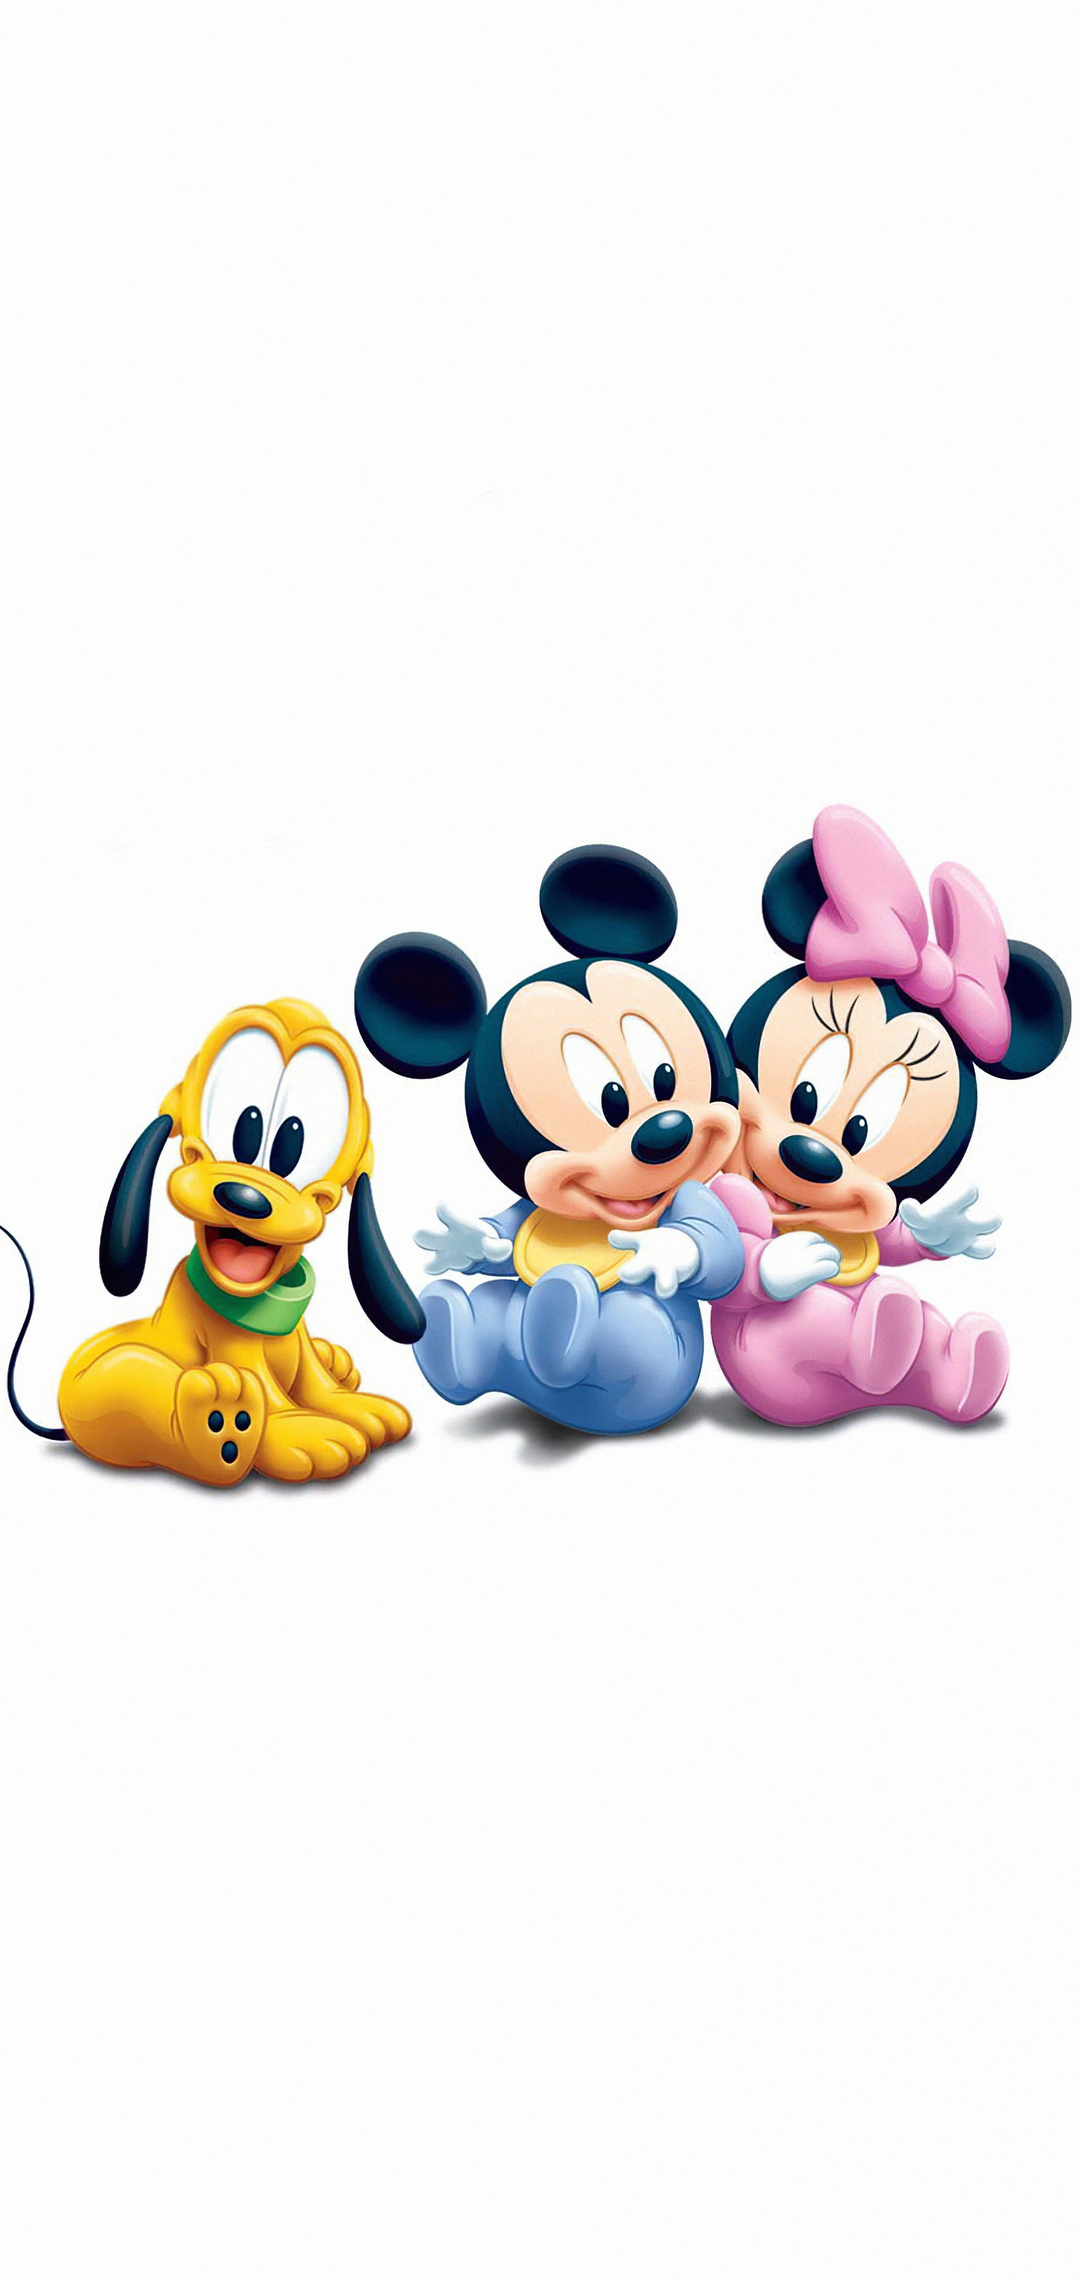 mickey-mouse-and-goofy-0y.jpg